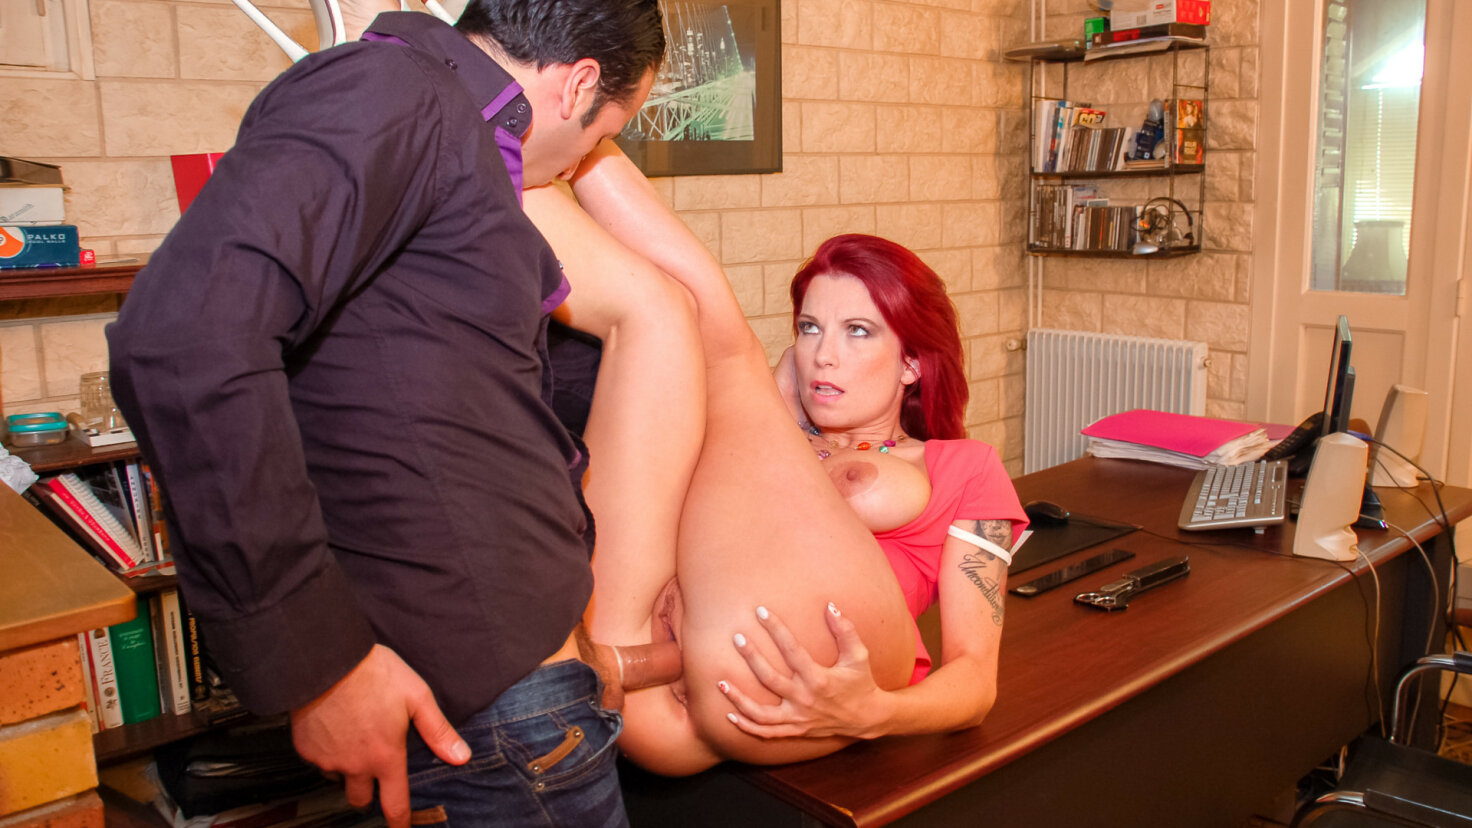 Busty French redhead babe Julie Valmont fucked hard during an interview